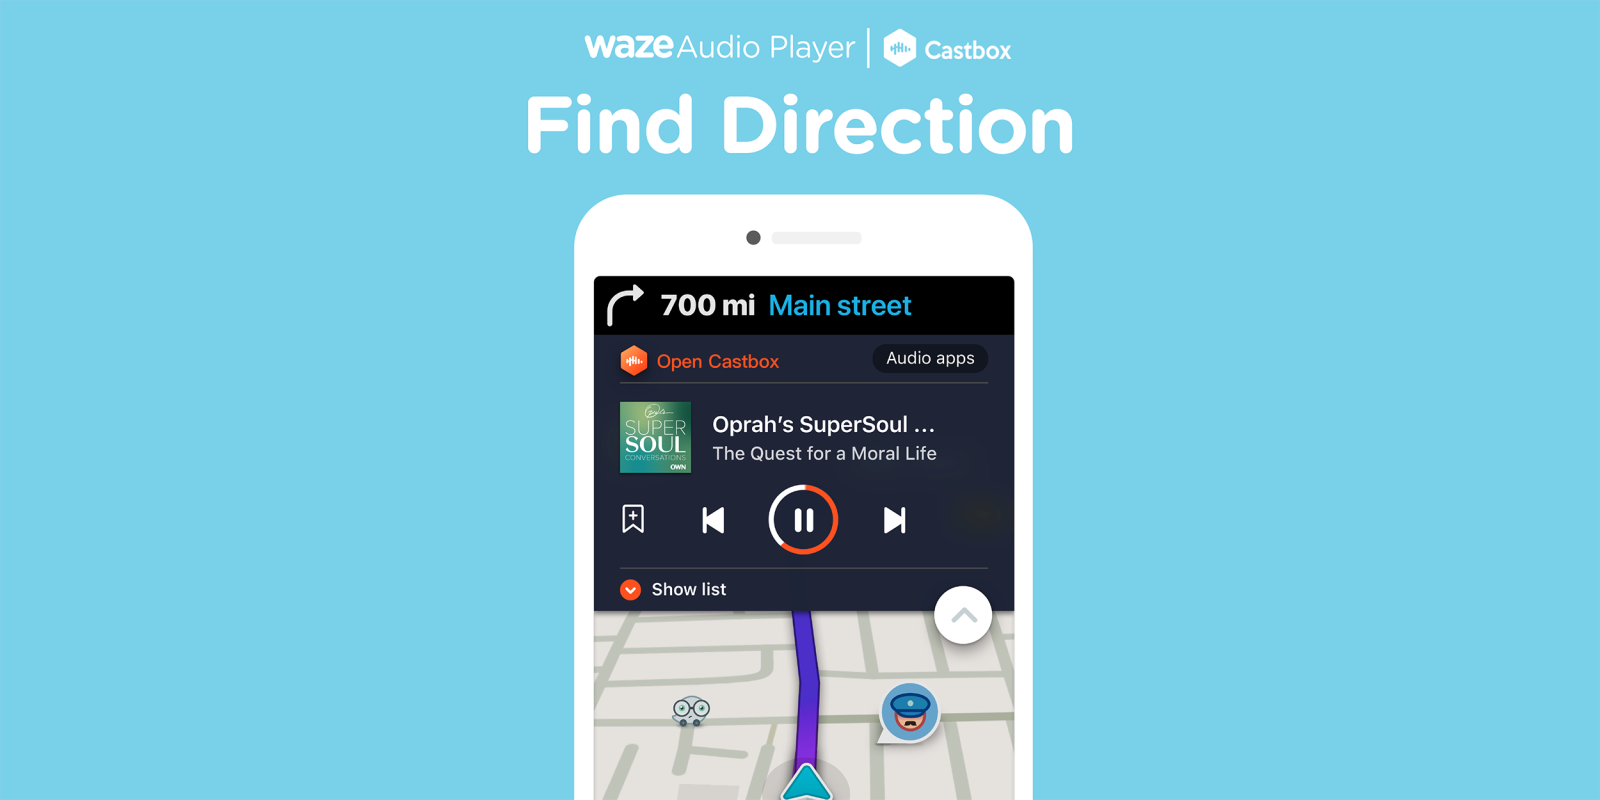 Waze adds support for Castbox podcast player on Android - 9to5Google